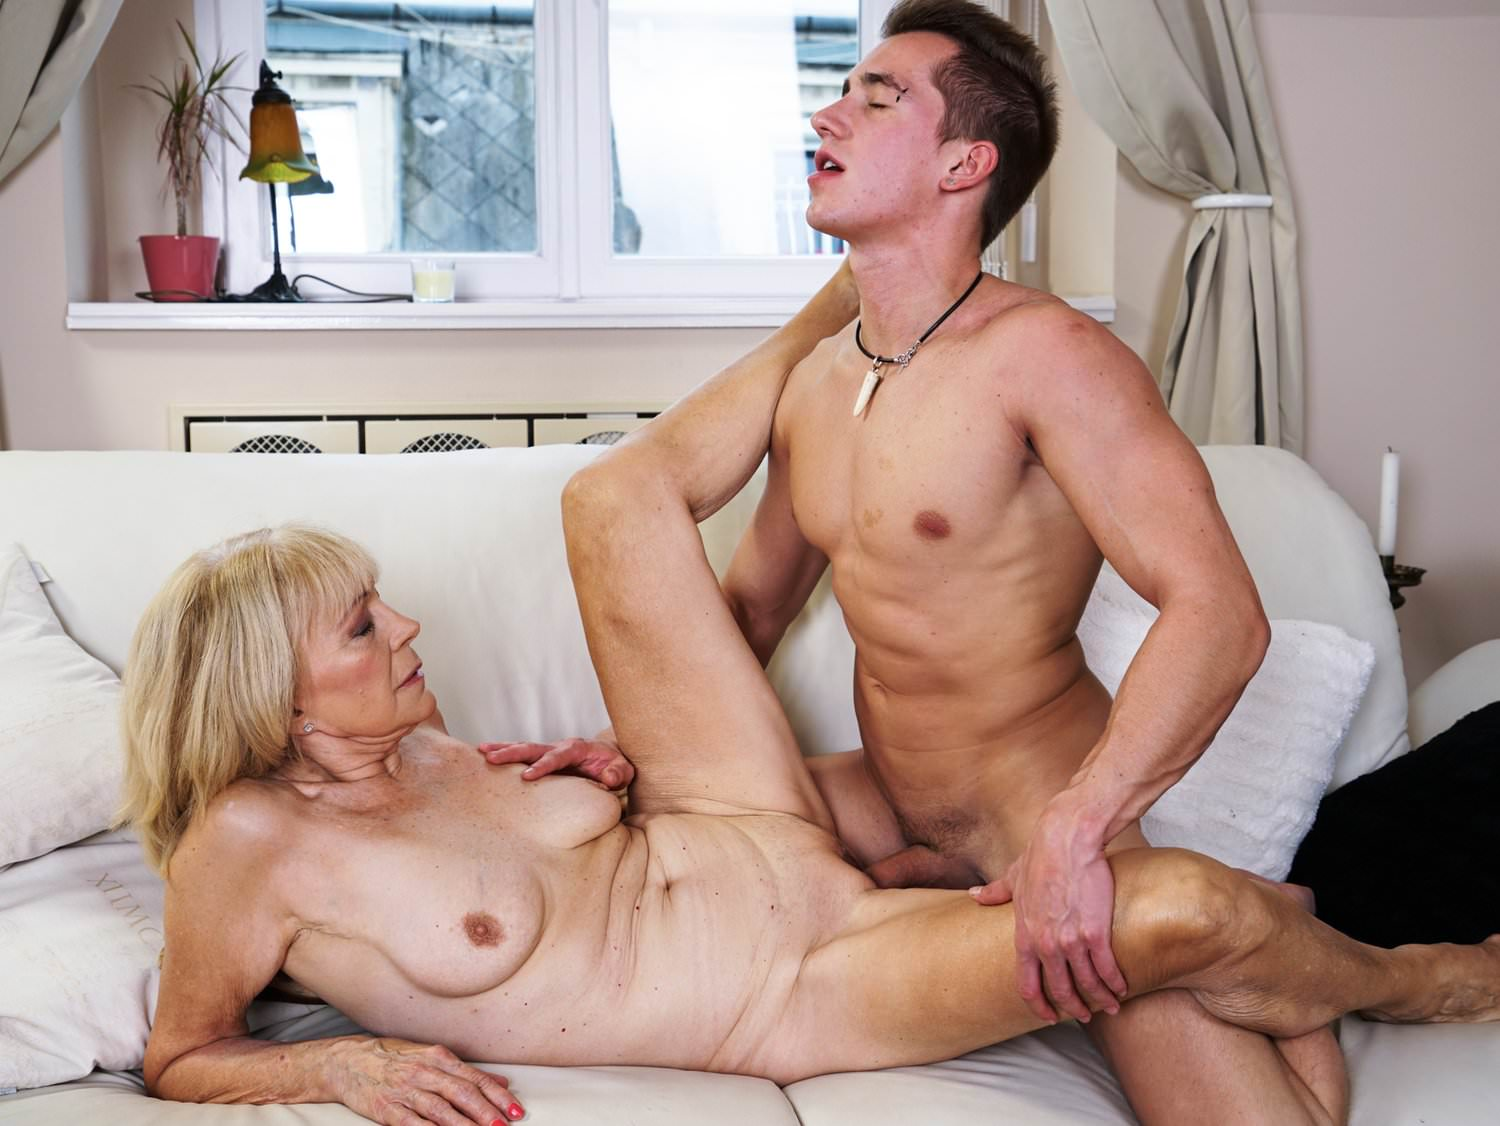 Mature mothers who fuck younger men — photo 11